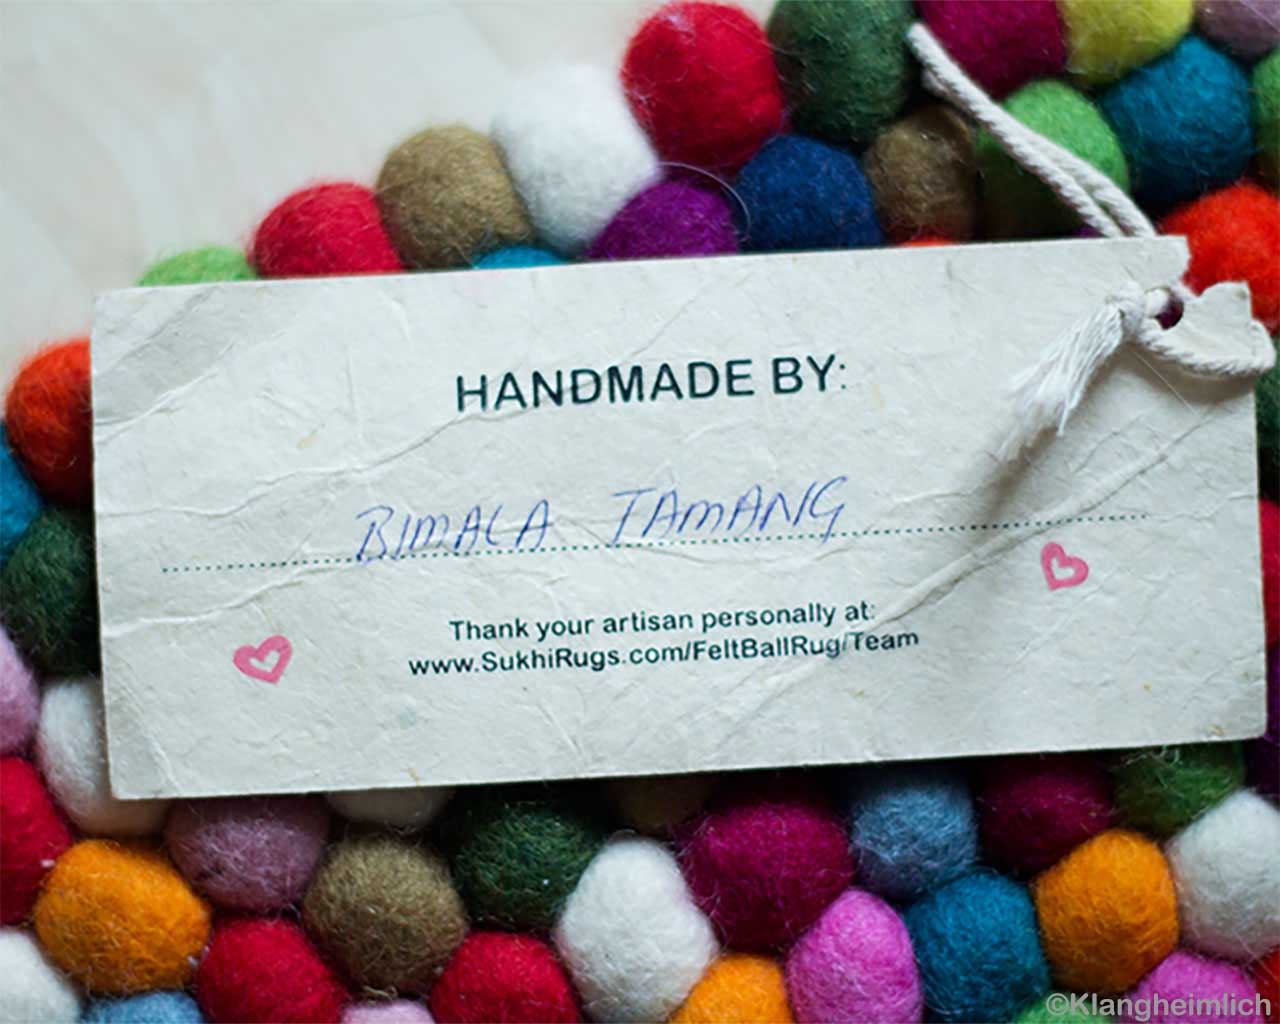 hand made artist name tag nepalese fresh multi color felt ball bedroom rugs